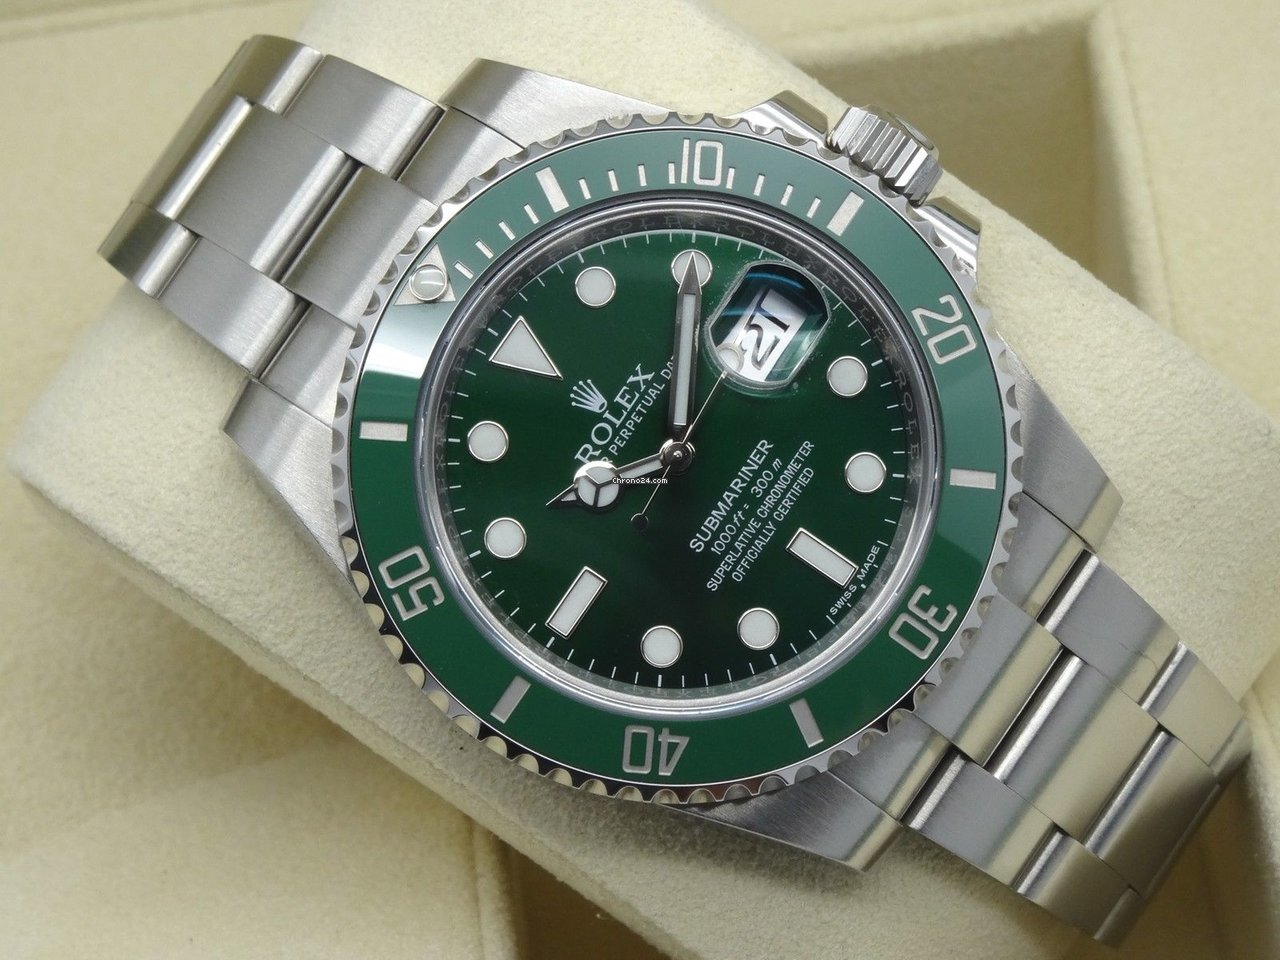 300e66f80 Rolex Submariner 116610lv for $13,950 for sale from a Trusted Seller on  Chrono24